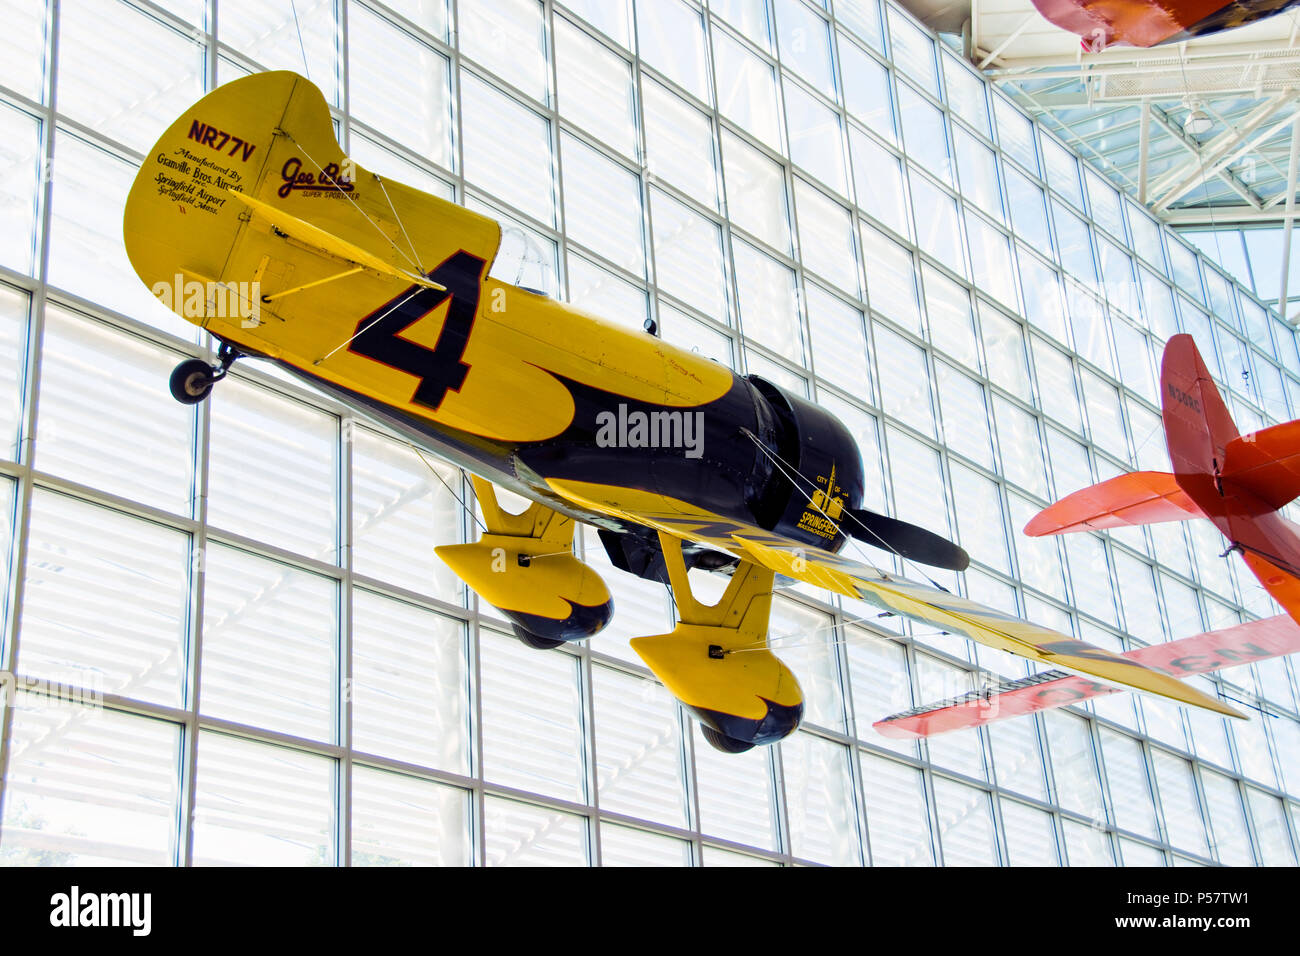 """A reproduction of the Gee Bee 'City of Springfield,"""" built to win the 1931 Thompson Trophy Race, hangs in the Museum of Flight, Tukwila Washington. - Stock Image"""